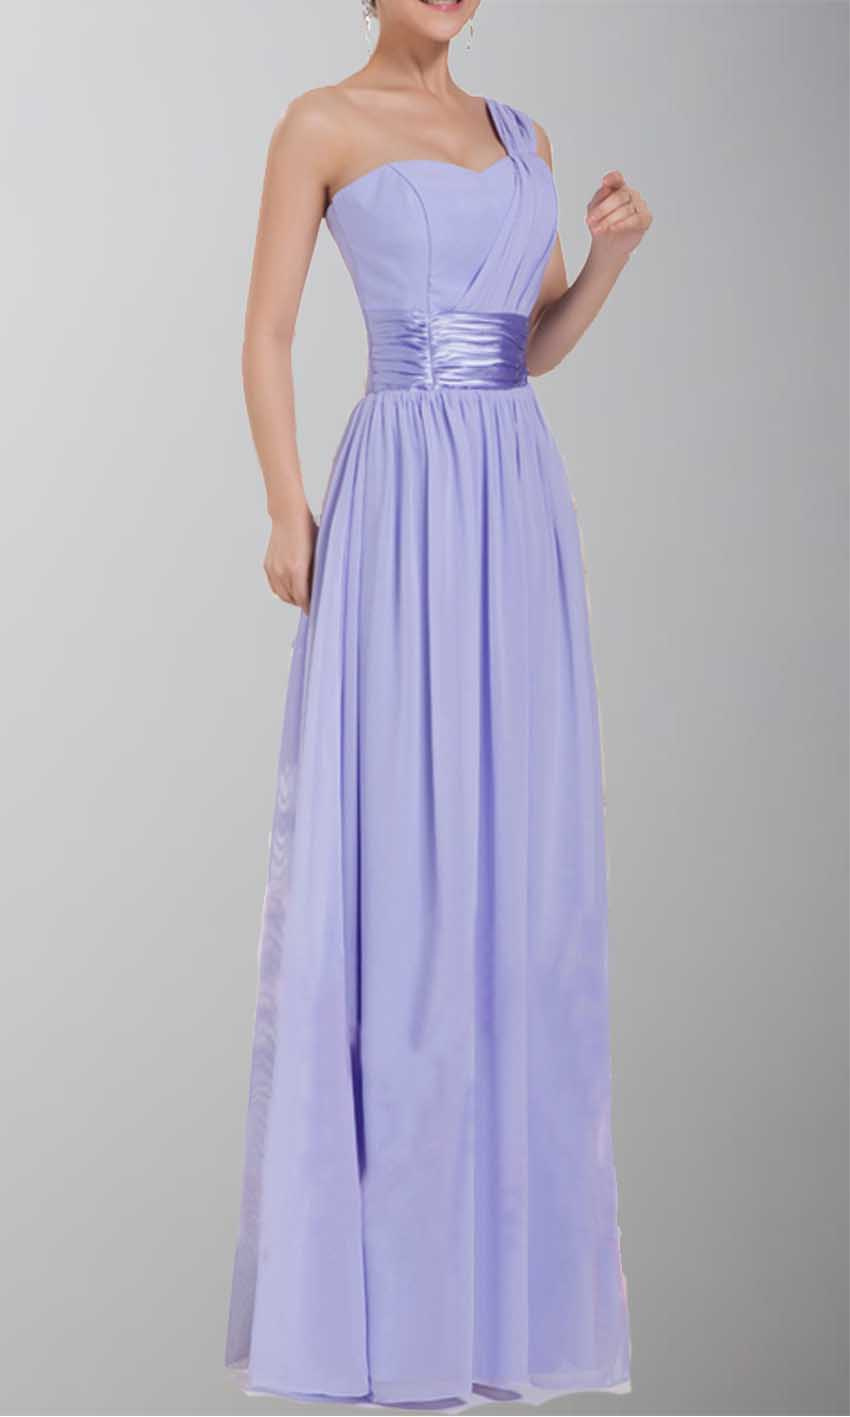 Allure One Shoulder Prom Dresses Under 100 KSP072 [KSP072] - £84.00 : Cheap Prom Dresses Uk, Bridesmaid Dresses, 2014 Prom & Evening Dresses, Look for cheap elegant prom dresses 2014, cocktail gowns, or dresses for special occasions? kissprom.co.uk offers various bridesmaid dresses, evening dress, free shipping to UK etc.